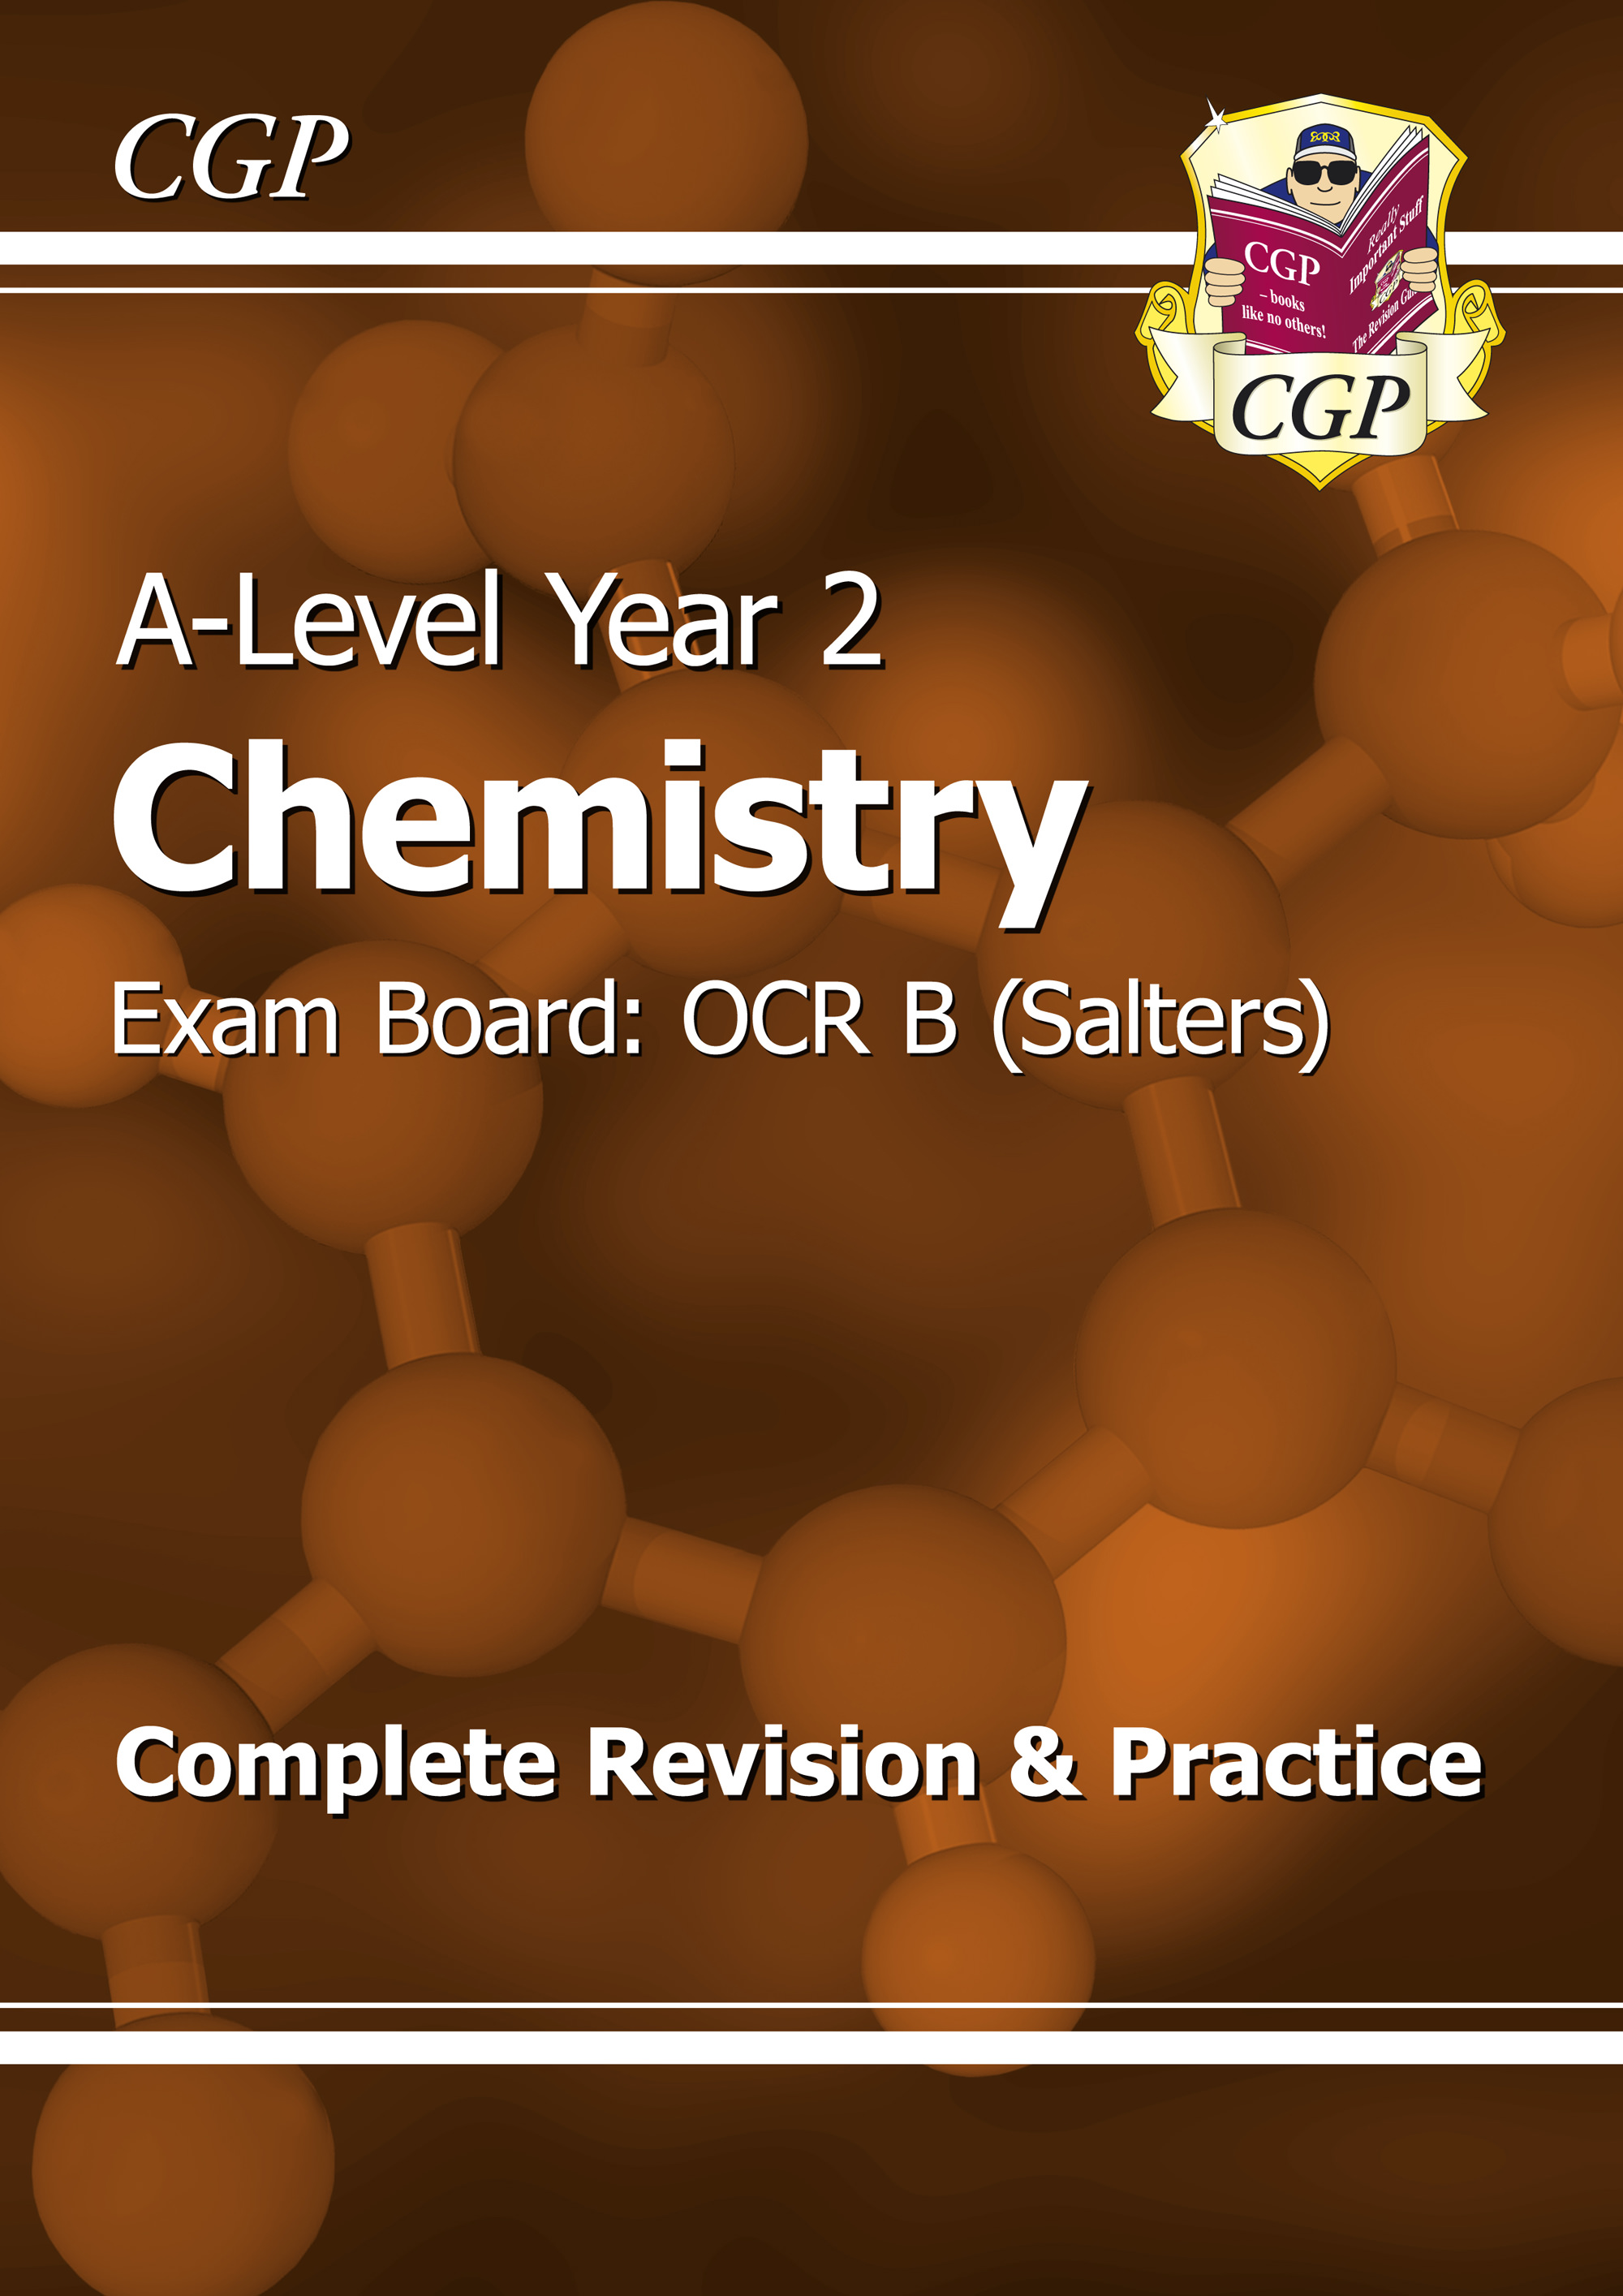 CRBR62DK - A-Level Chemistry: OCR B Year 2 Complete Revision & Practice